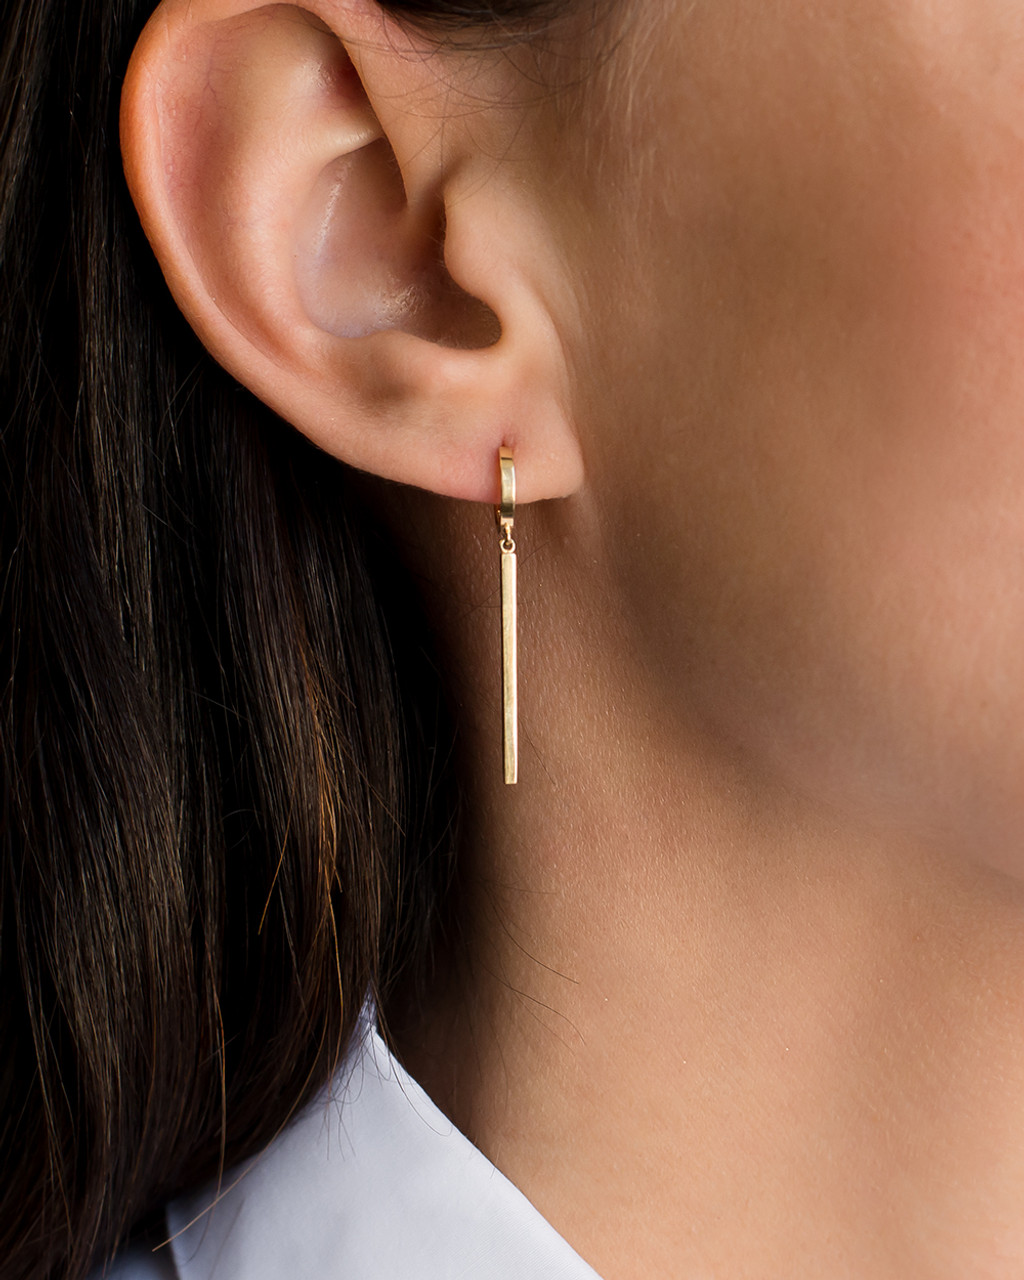 14k gold hoop earrings with dangling bars